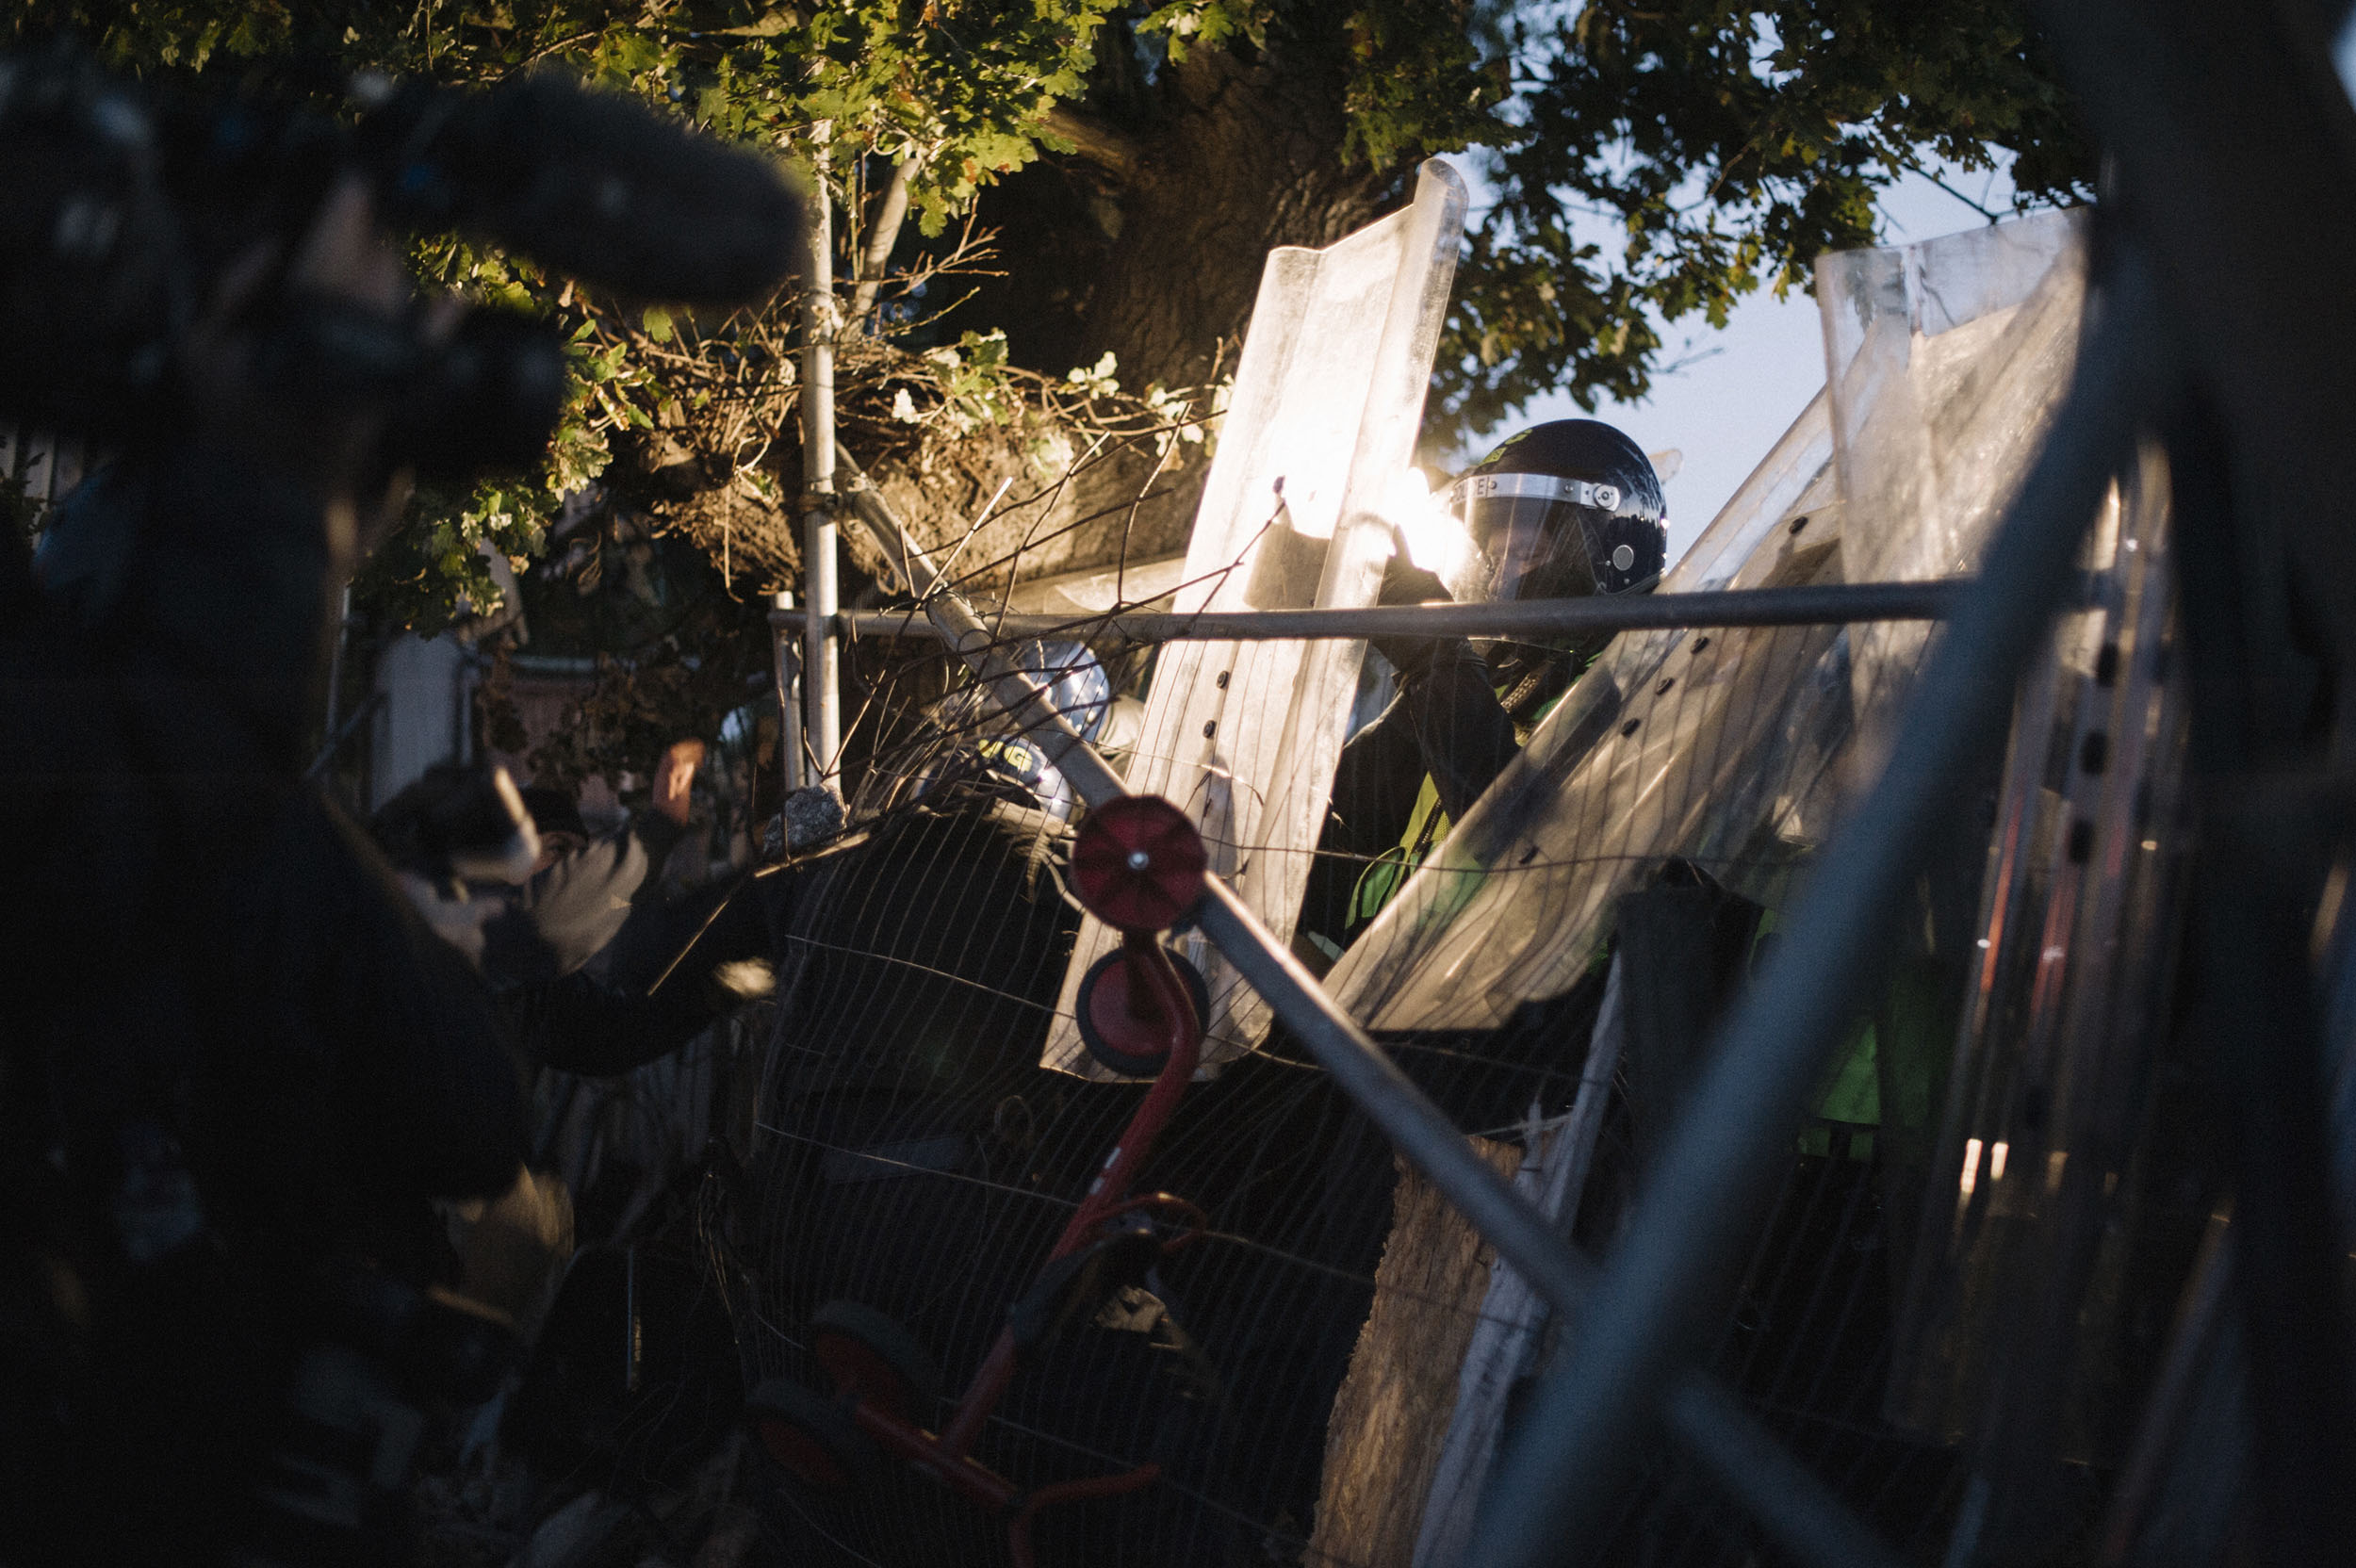 Police breach Dale Farm's perimeter, using tasers to neutralize and push back activists who reinforce barriers.